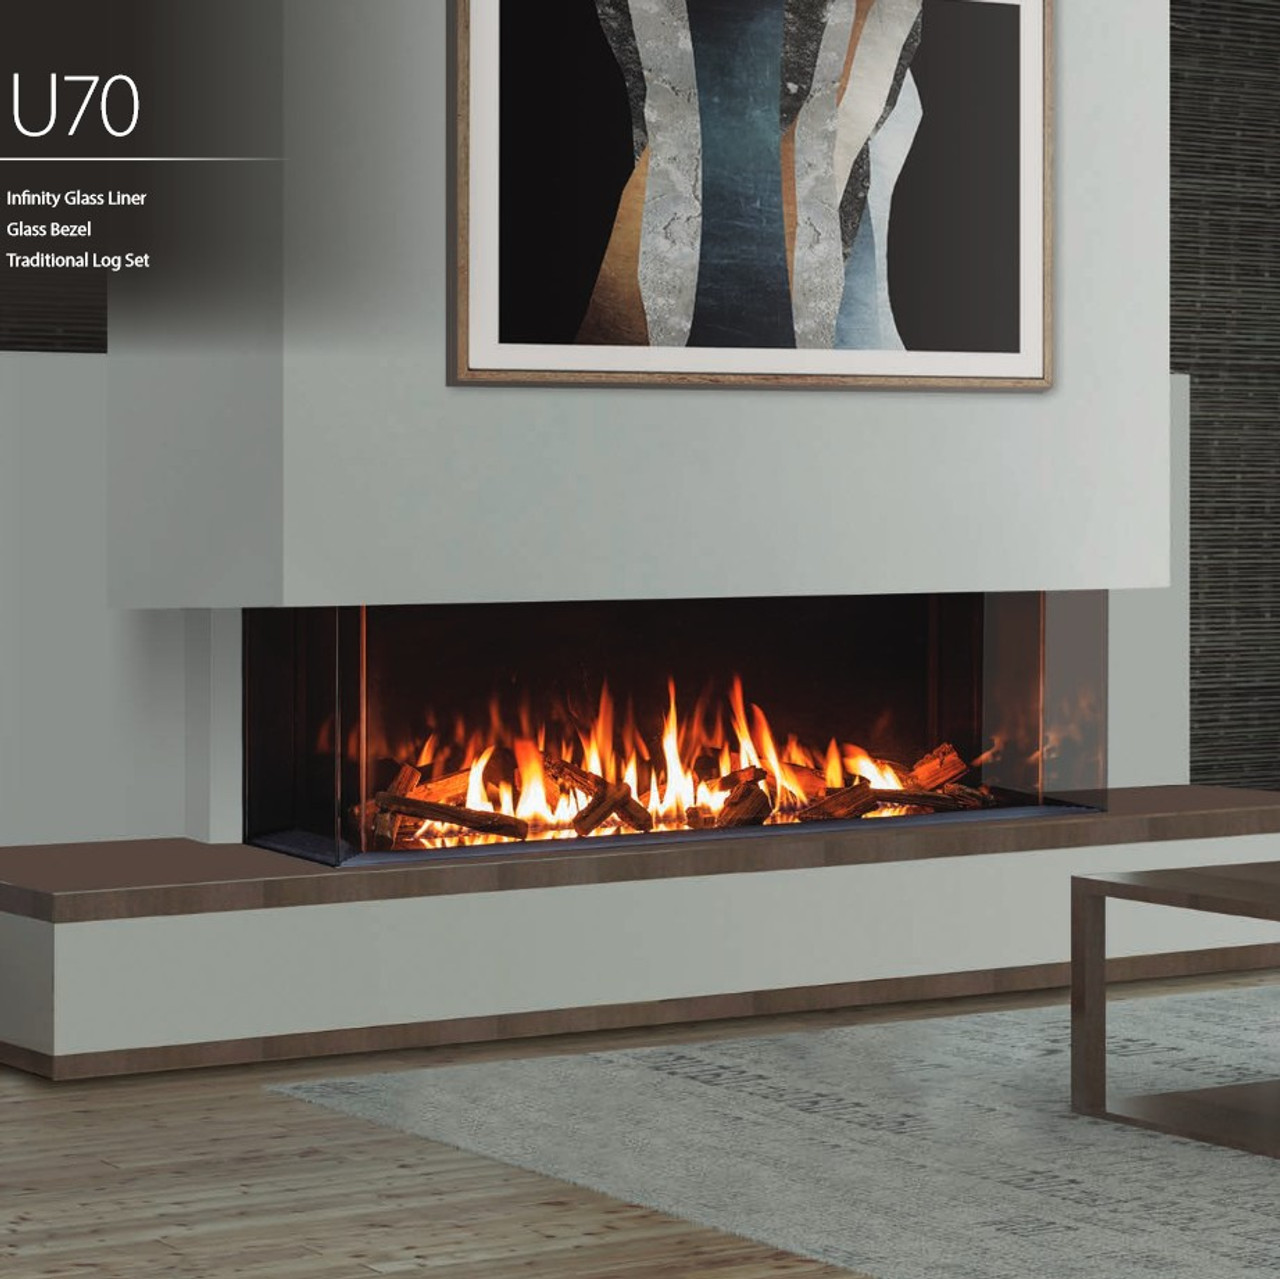 Urbana U70 Luxury Gas Fireplace